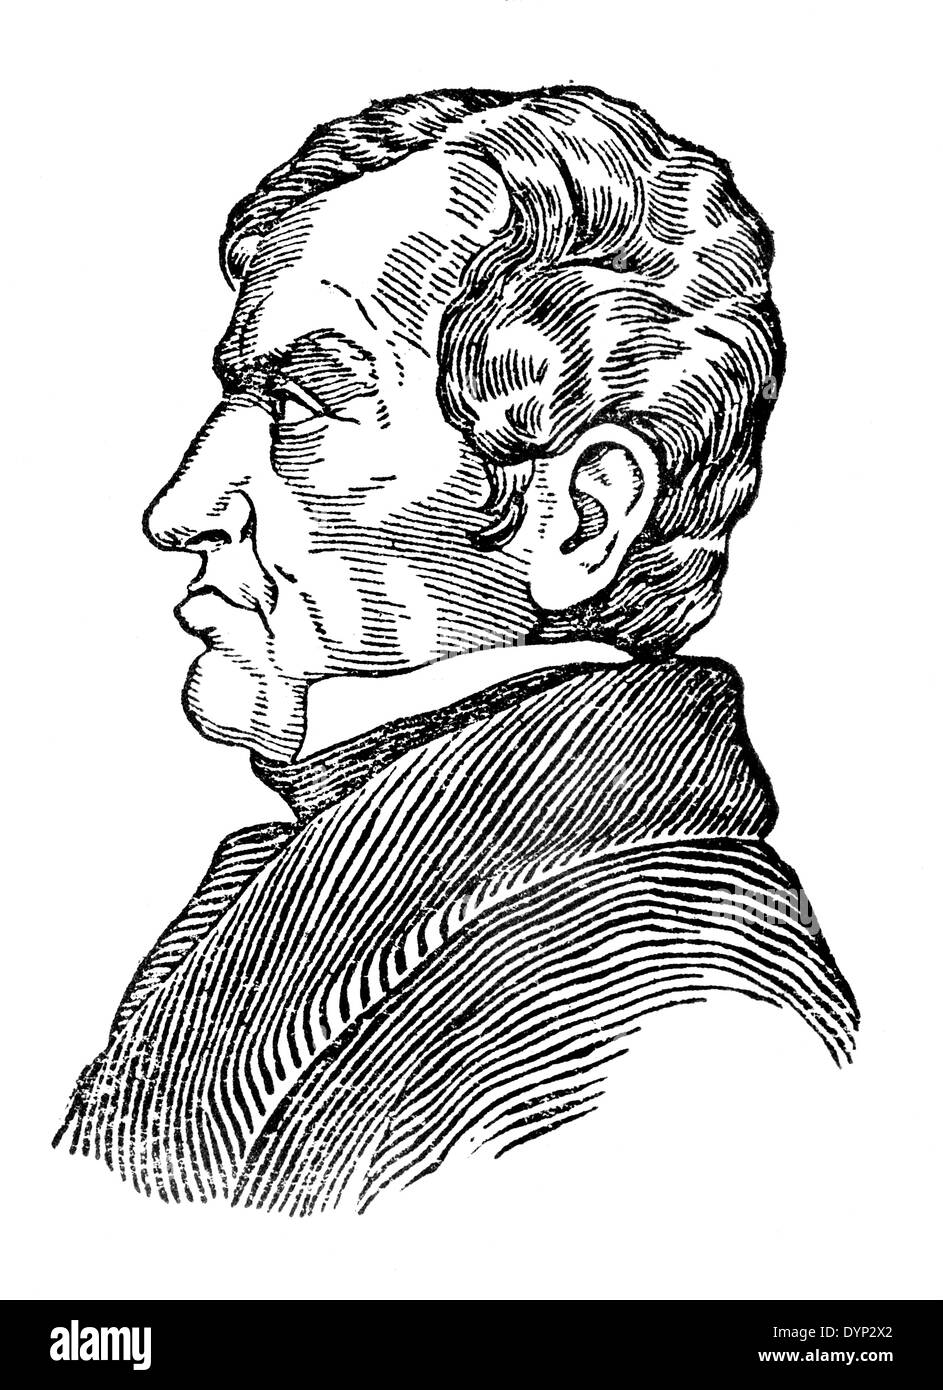 Andre-Marie Ampere (1775-1836), French physicist and mathematician, illustration from Soviet encyclopedia, 1926 - Stock Image